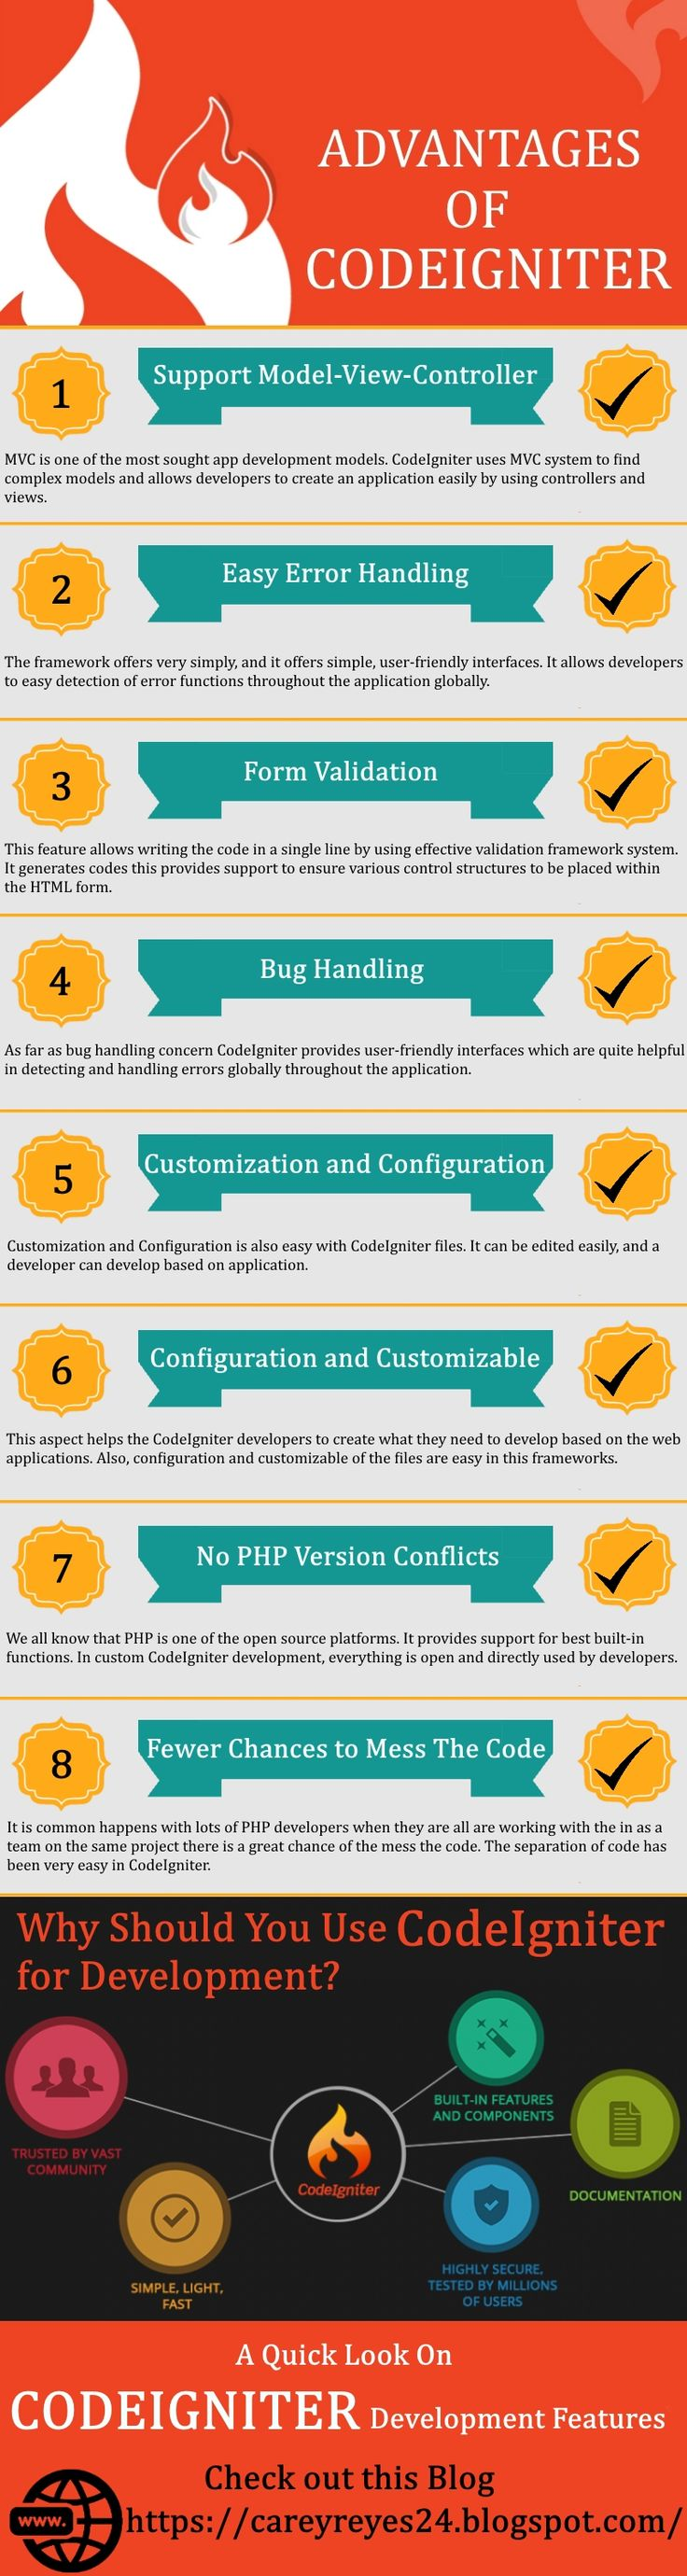 Top 8 Advantages of Using CodeIgniter for Offshore Web Application Development